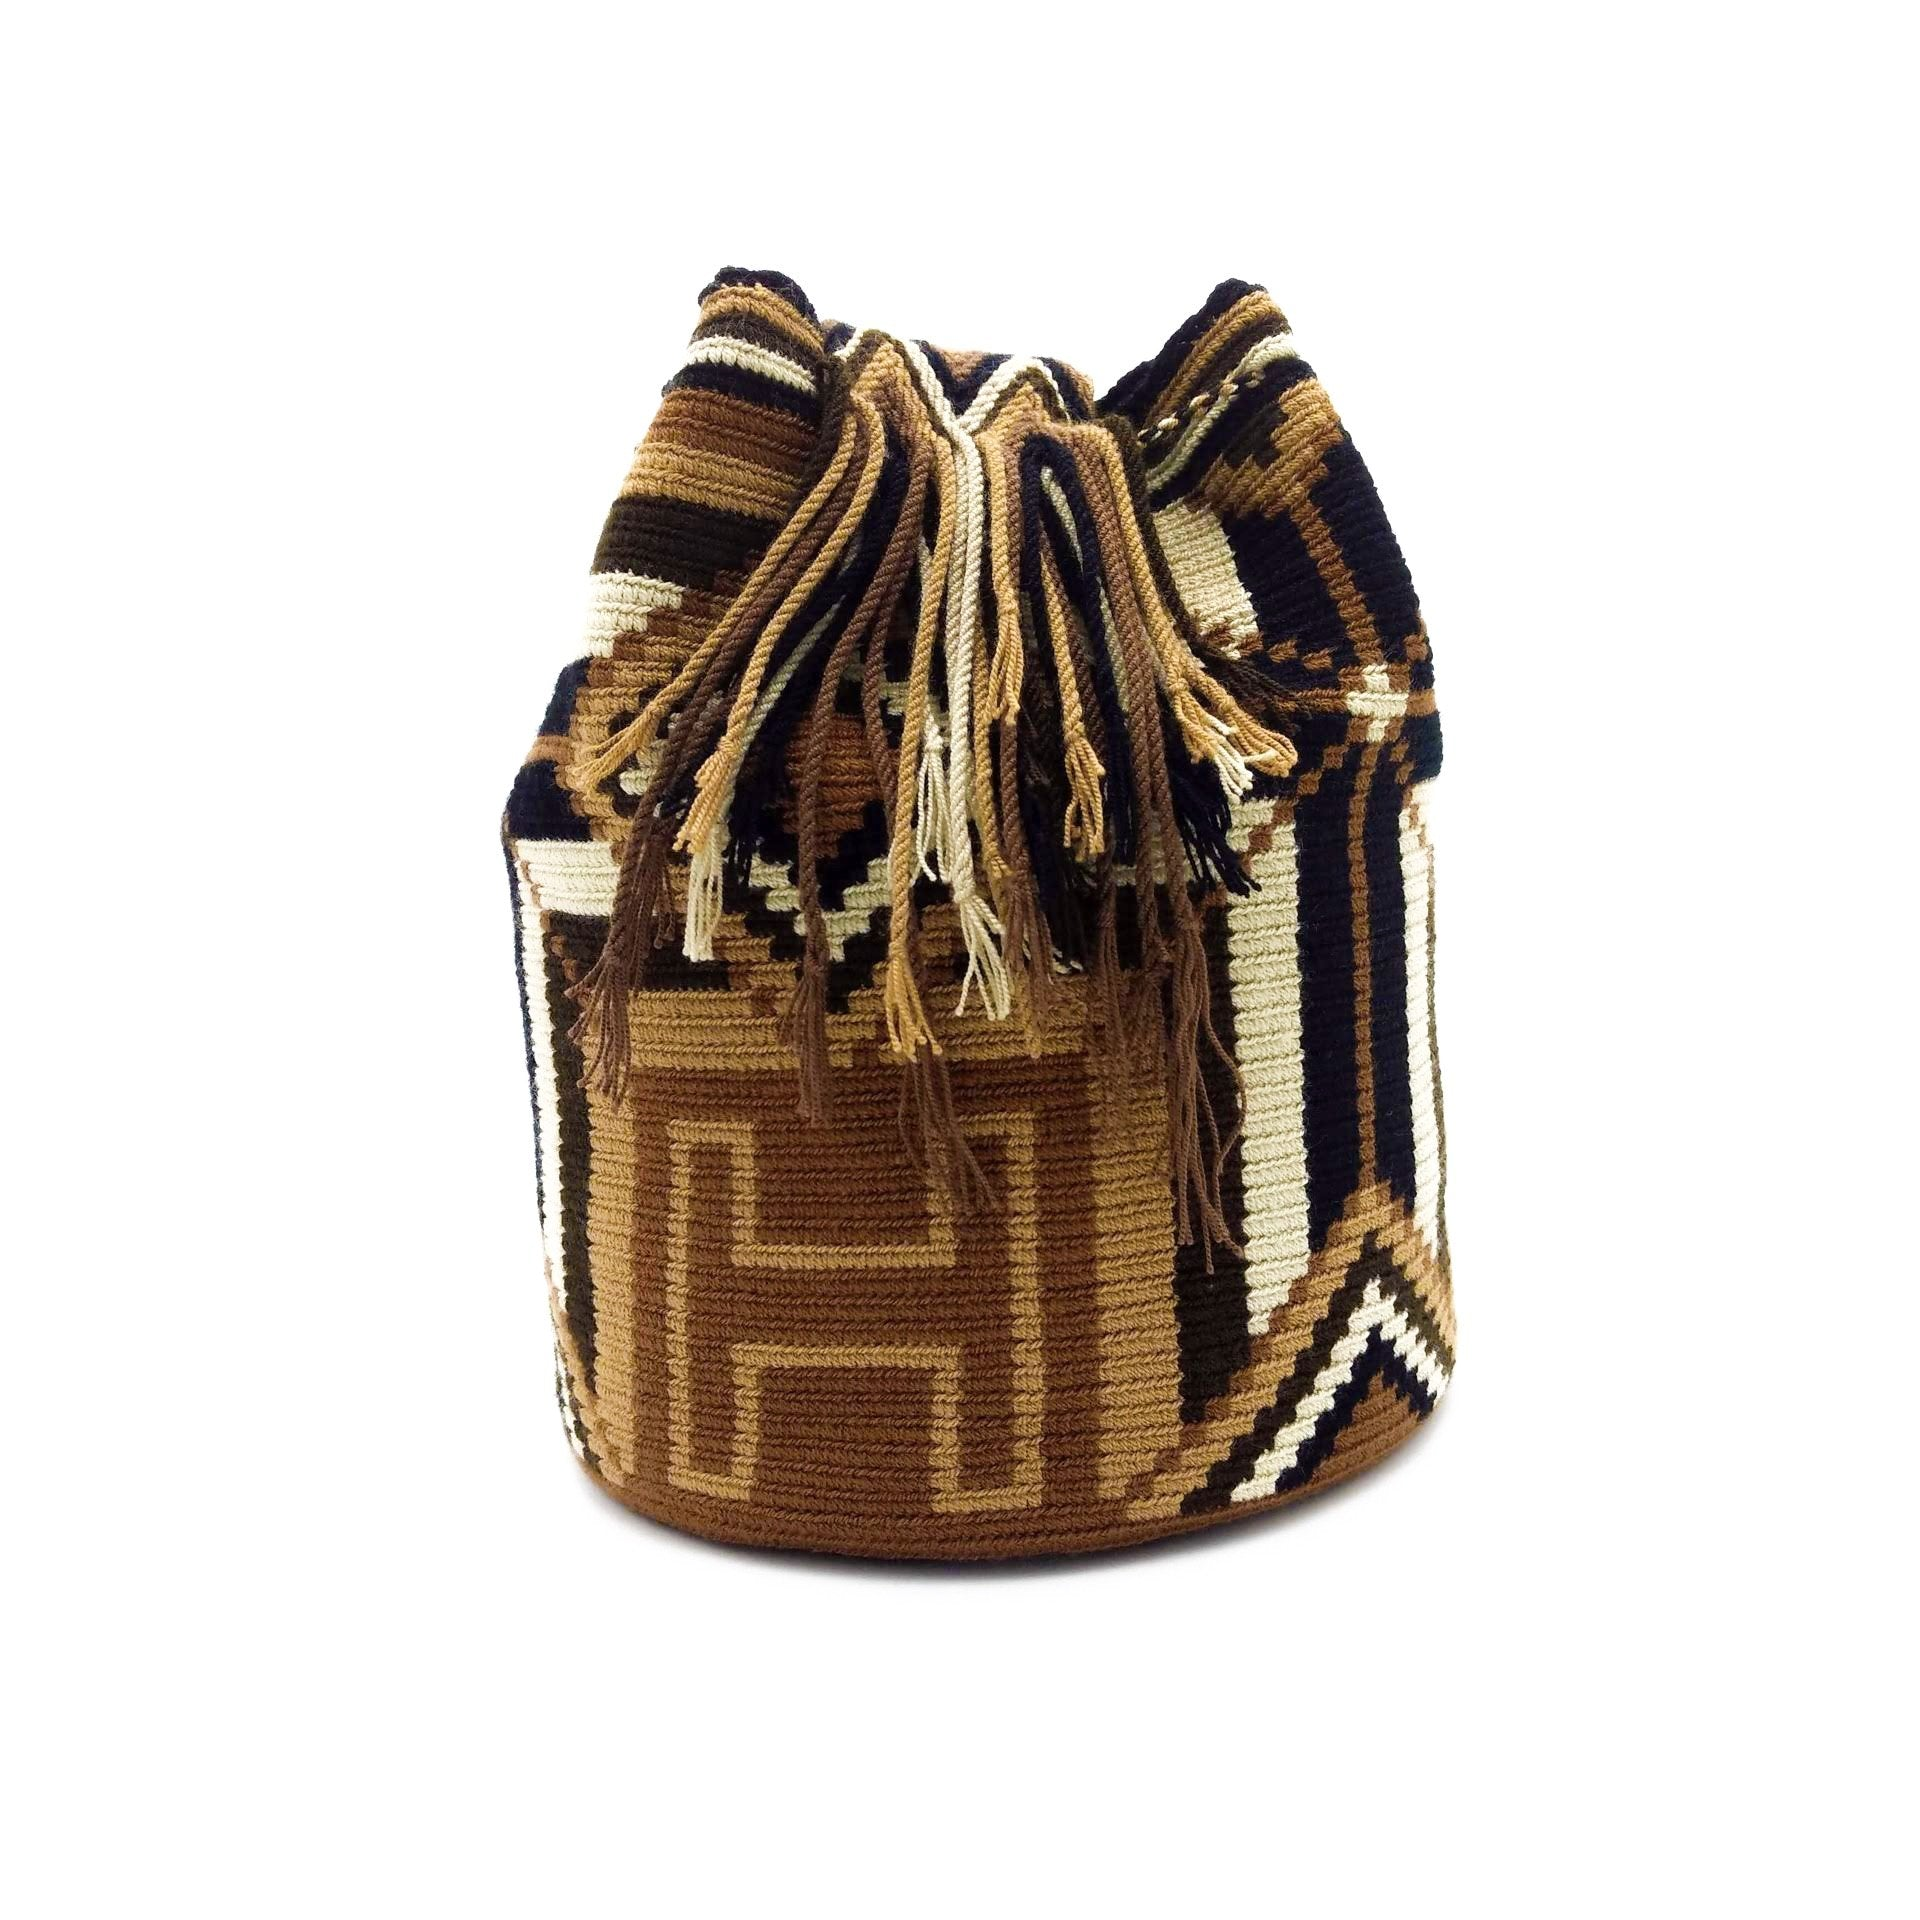 Side view of Brown-Cross Wayuu Mochila Bag with a beautiful combination of the following colors: Beige, Light Brown, Brown, Dark Brown, and Black.